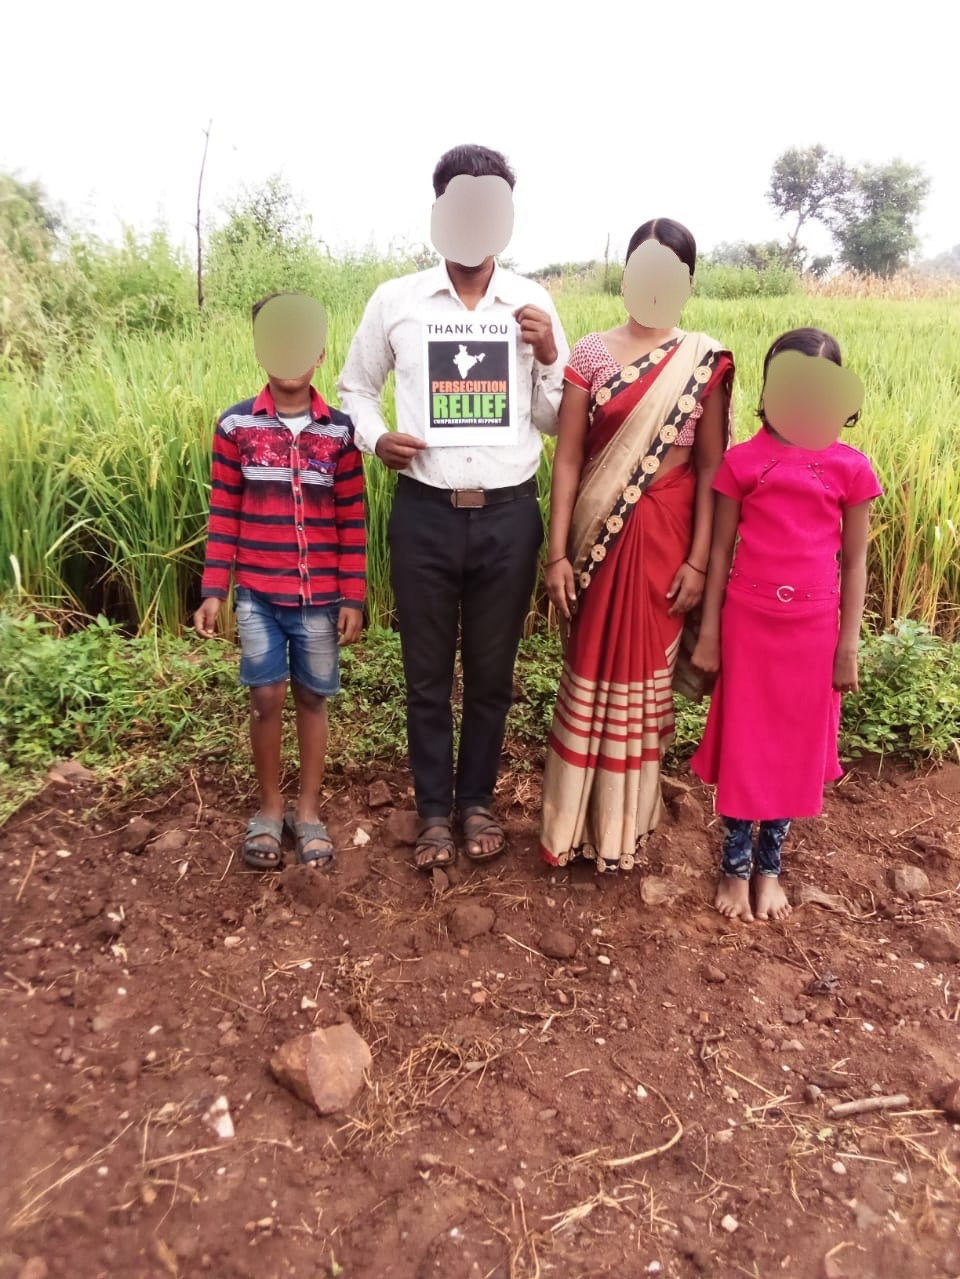 """"""" RECANT YOUR FAITH IN JESUS, ELSE GET BANISHED FROM OUR VILLAGE"""", MADHYA PRADESH"""